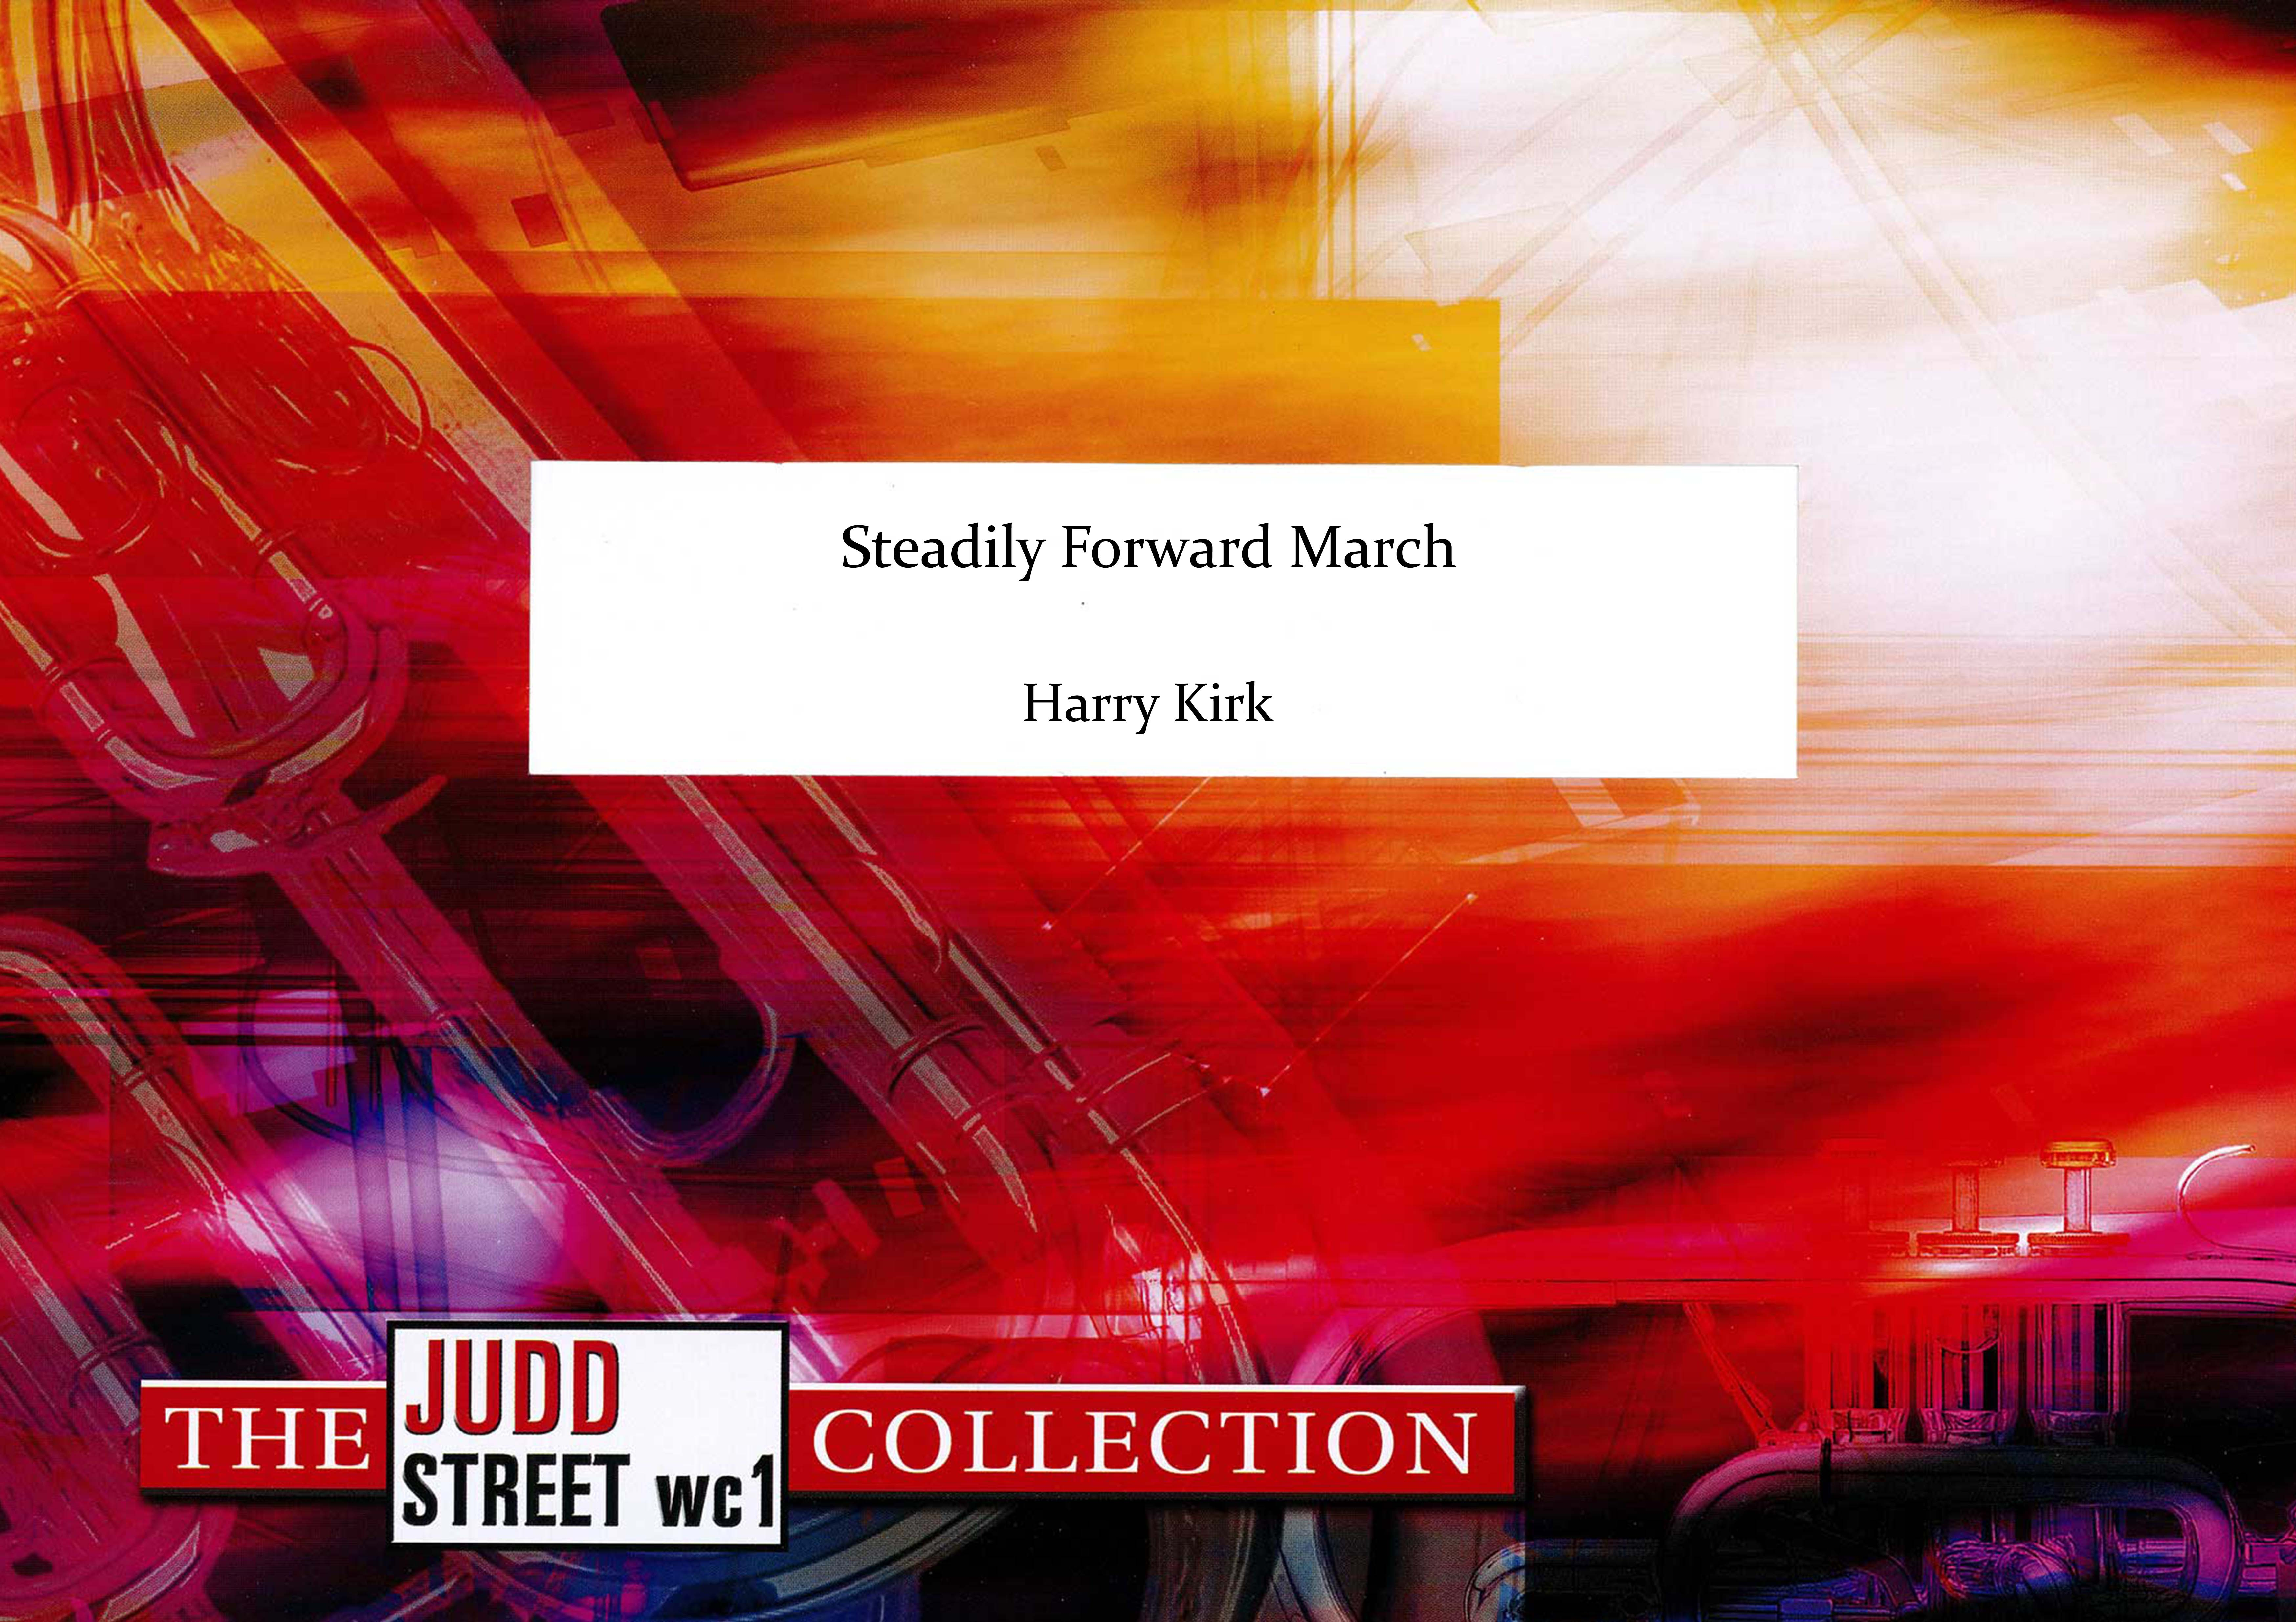 Steadily Forward March (Brass Band - Score only)